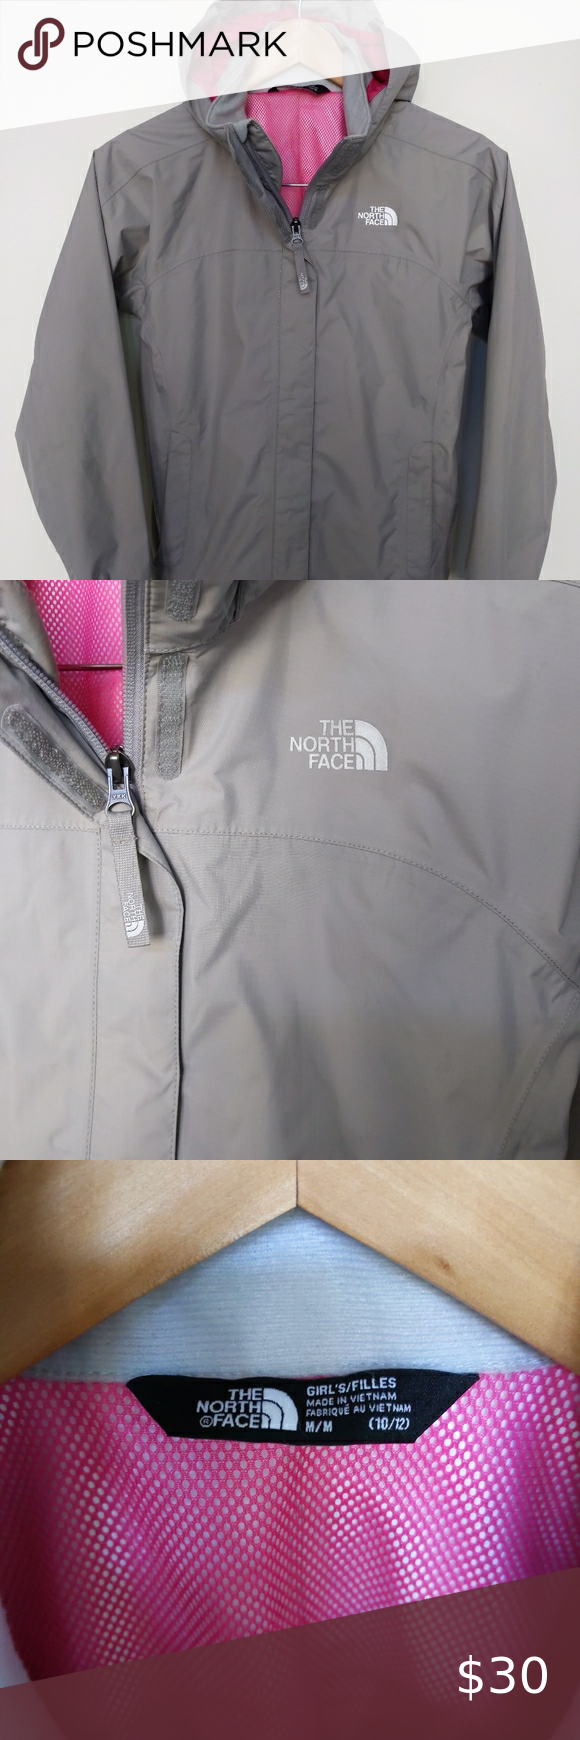 The North Face Girls Jacket Dry Vent Waterproof M Girls Rain Jacket The North Face M 10 12 Waterproof All Seas North Face Girls Girls Jacket Girls Rain Jackets [ 1740 x 580 Pixel ]